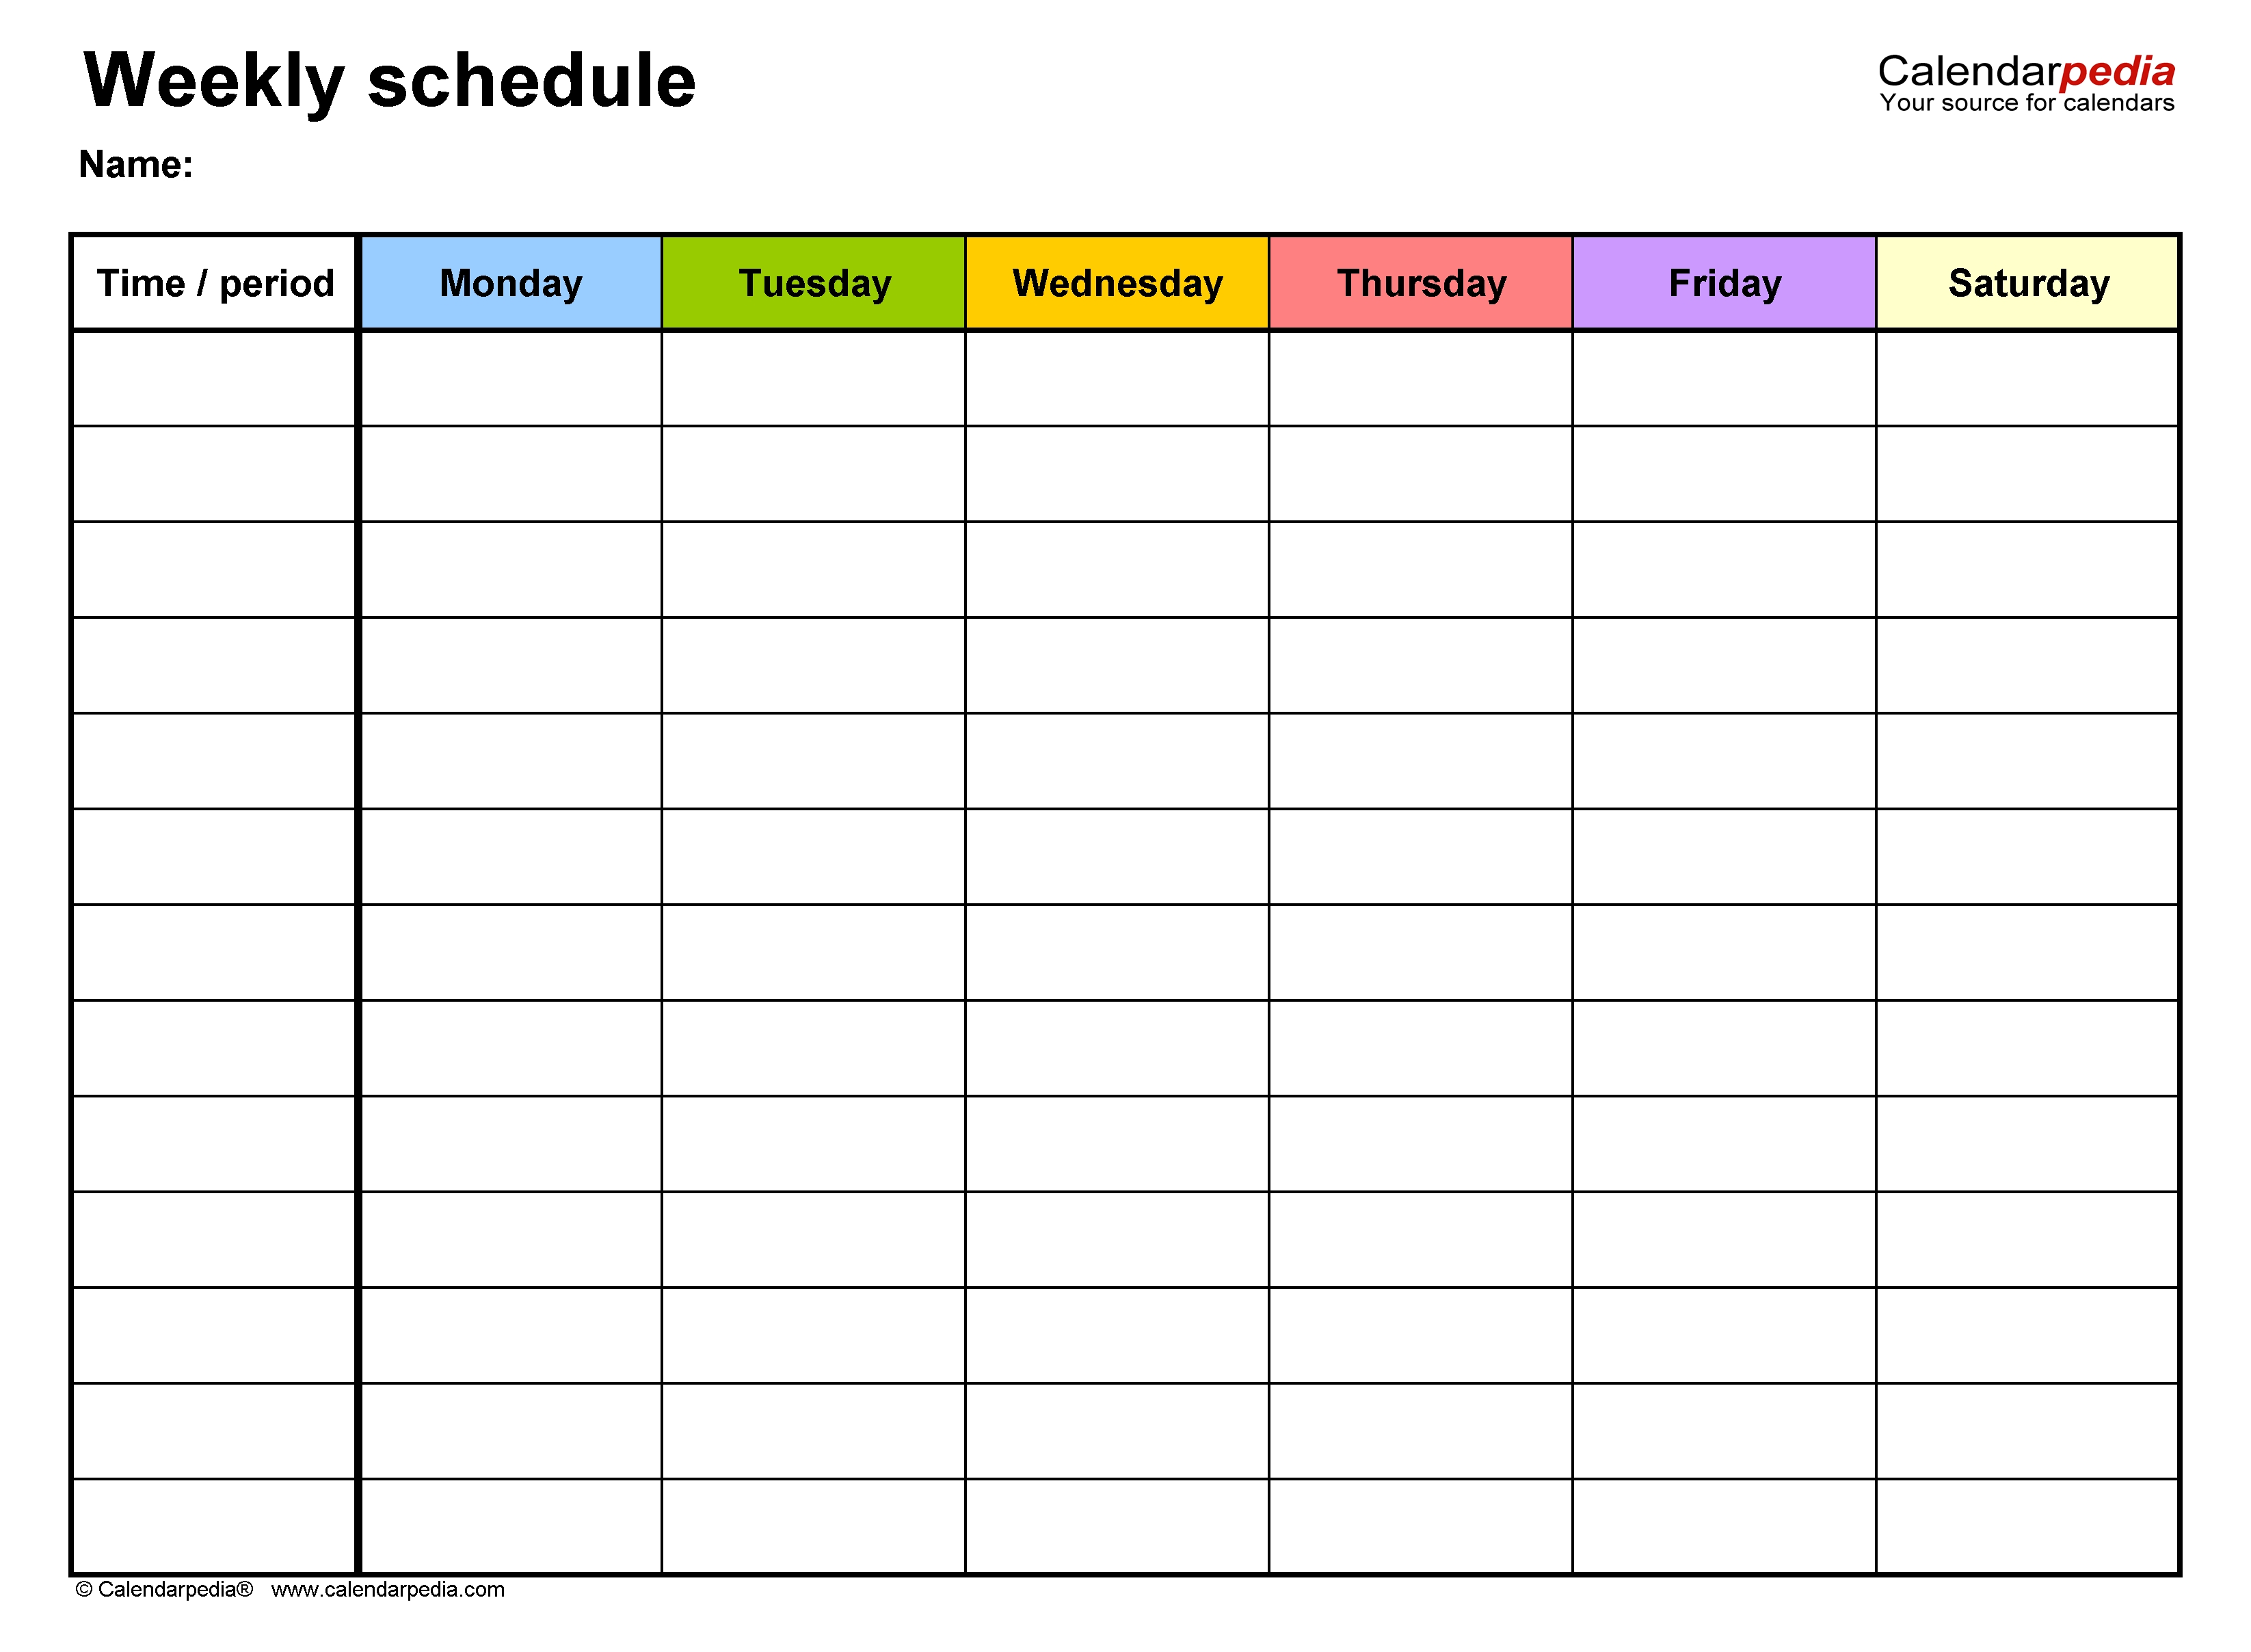 Free Weekly Schedule Templates For Excel - 18 Templates  Calendar With 6 Day Weeks